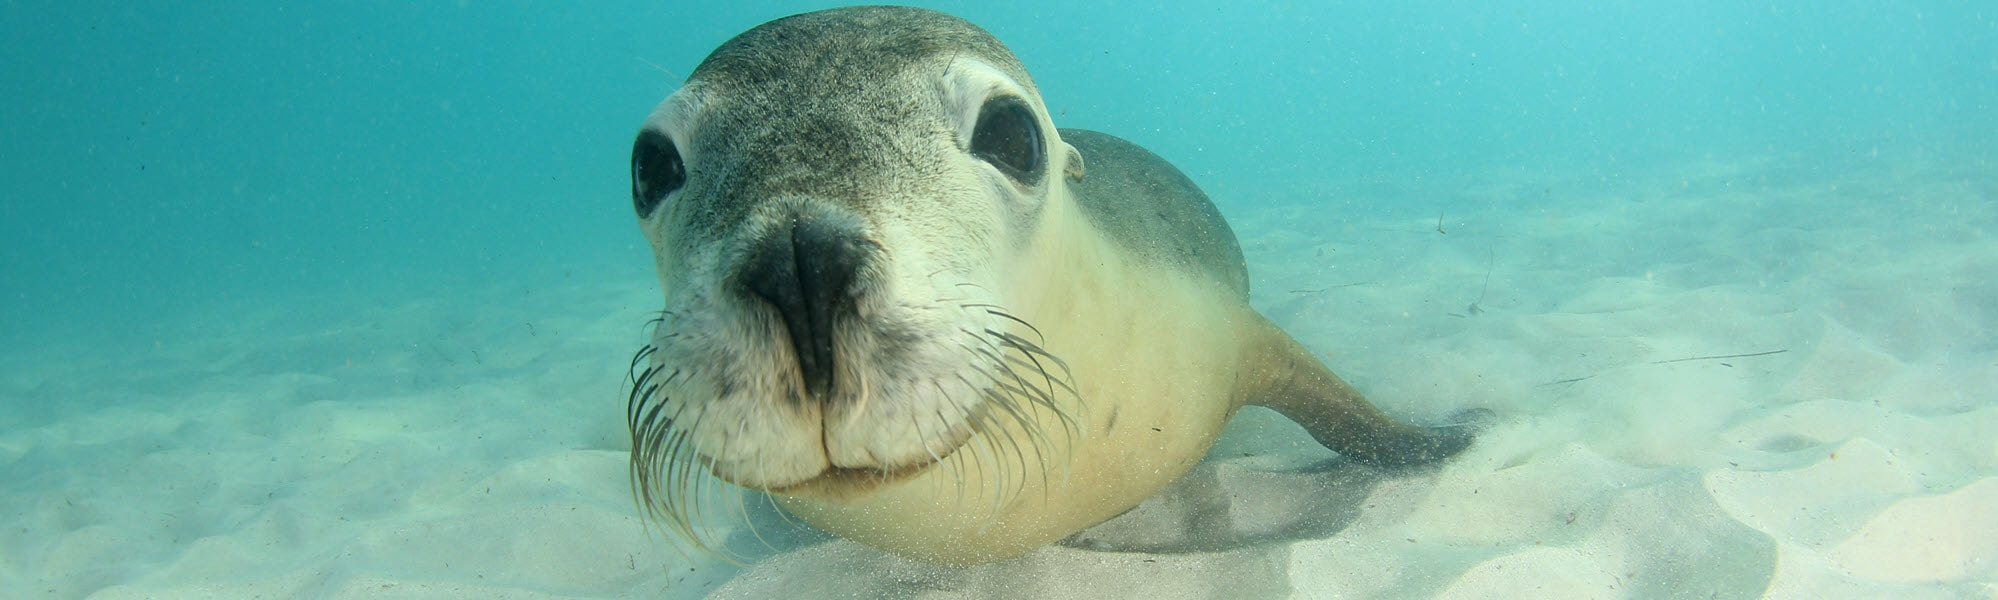 Australian sea lion smiling underwater at Jurien Bay in Western Australia.